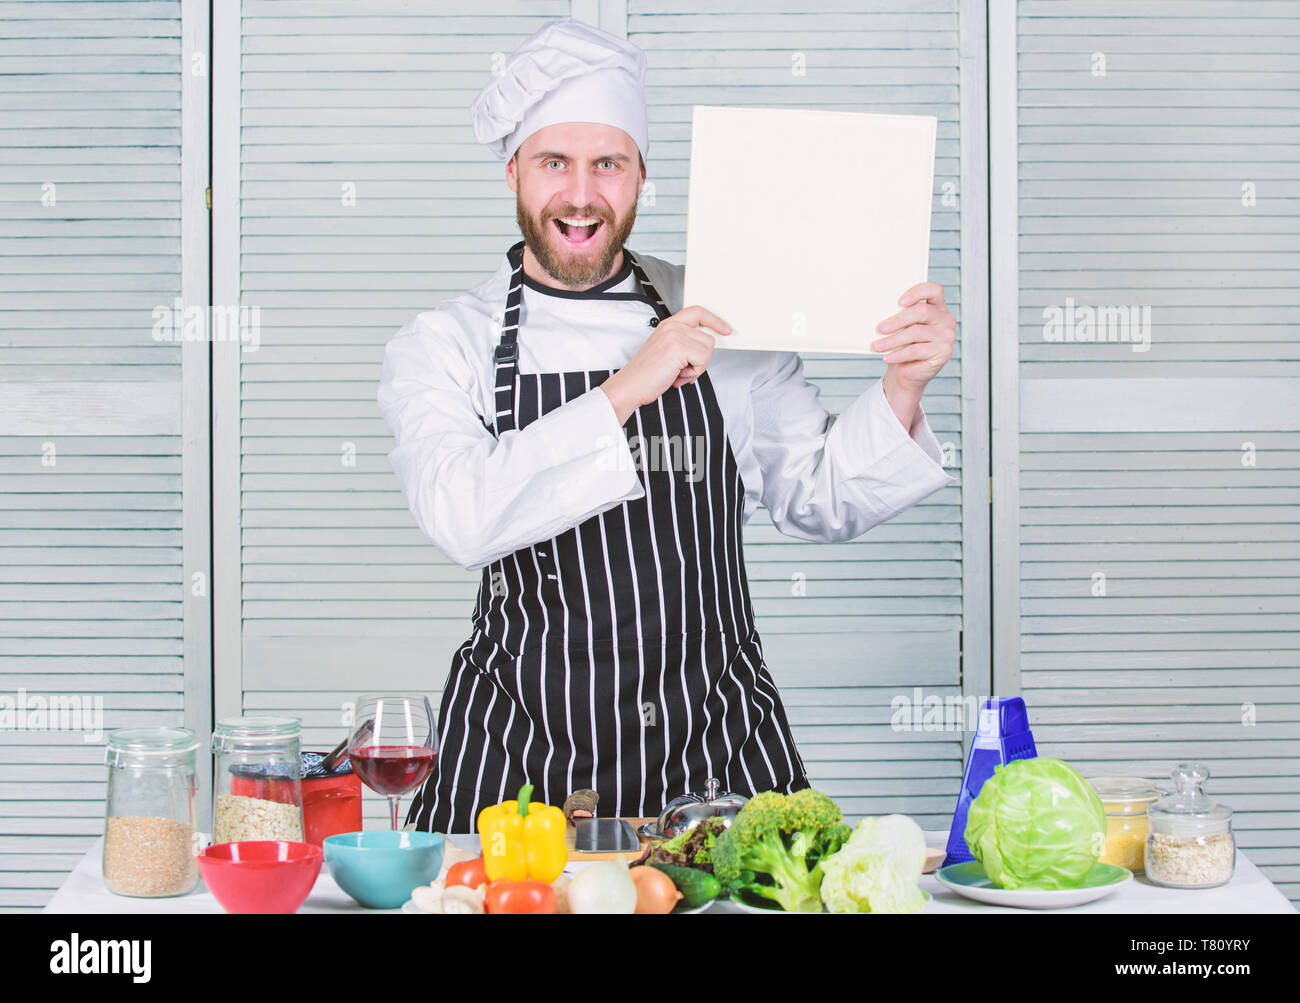 Ultimate cooking guide for beginners. Book family recipes copy space. According to recipe. Man bearded chef author of book. Chef recommend book. Culinary recipes book concept. Improve cooking skill. - Stock Image